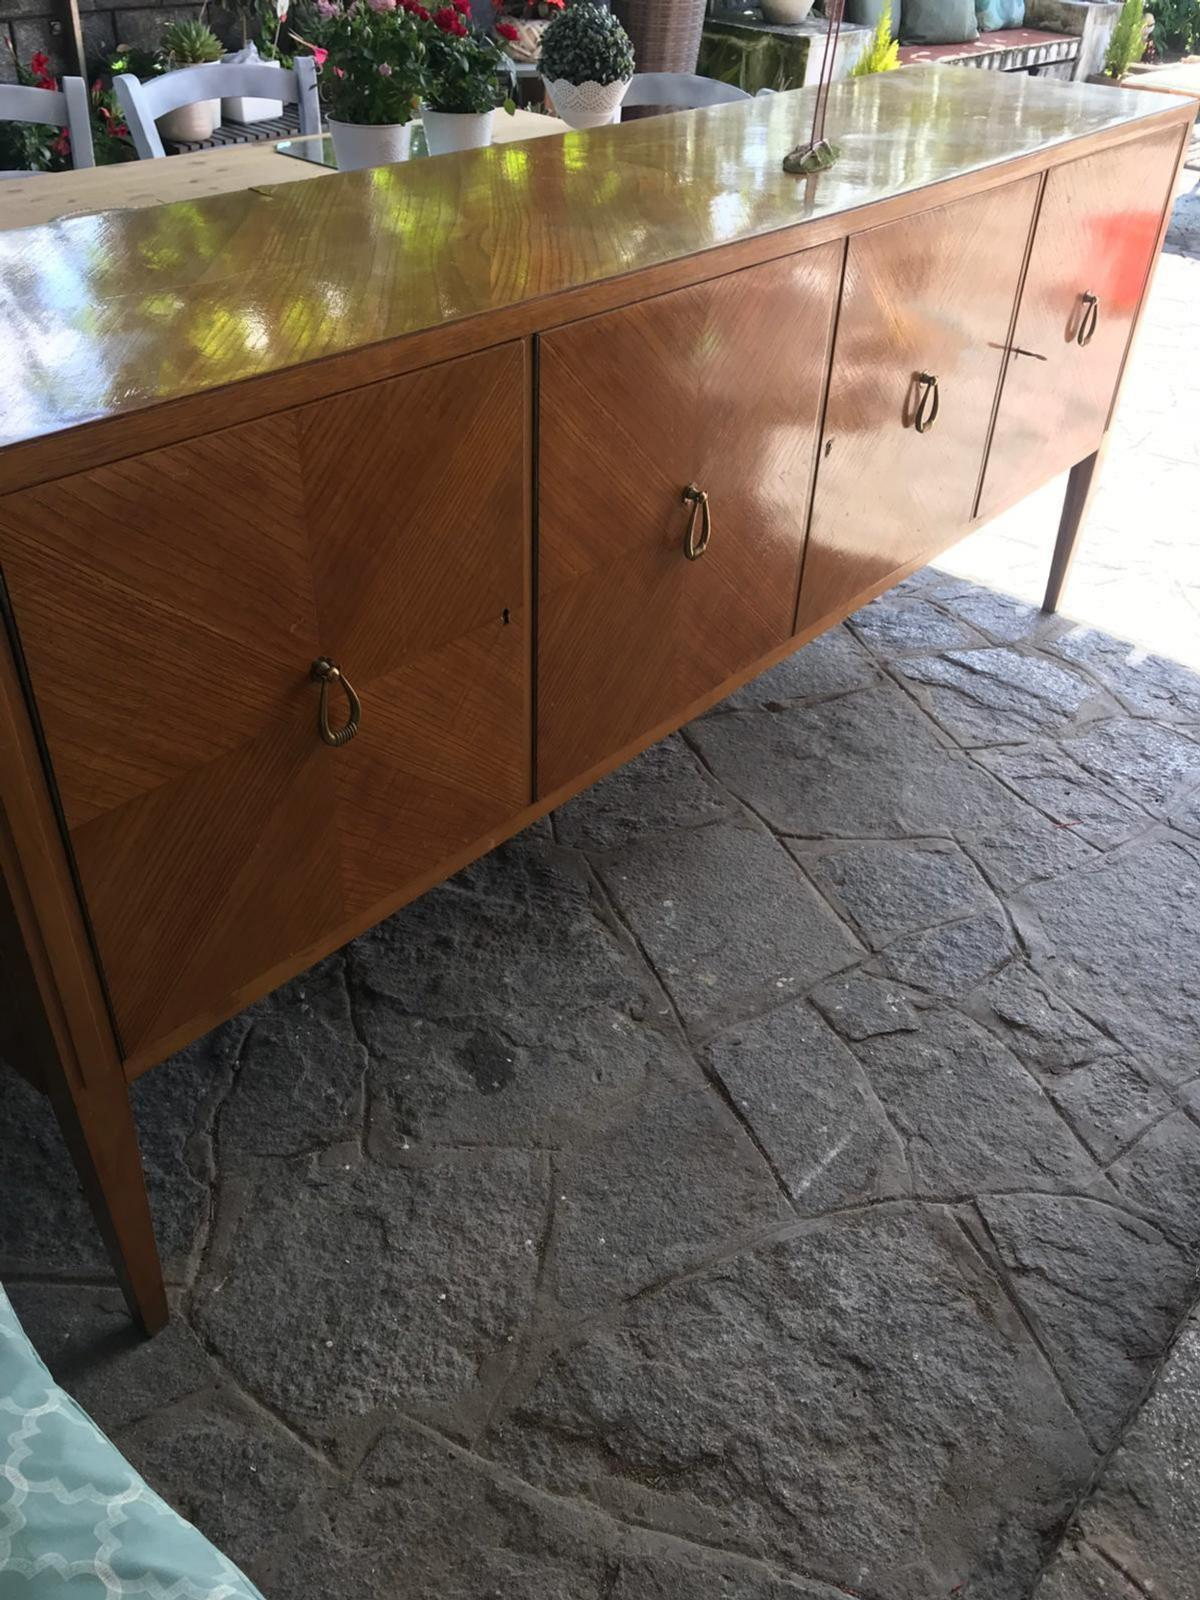 Madia O Credenza In 20020 Lainate For 570 00 For Sale Shpock